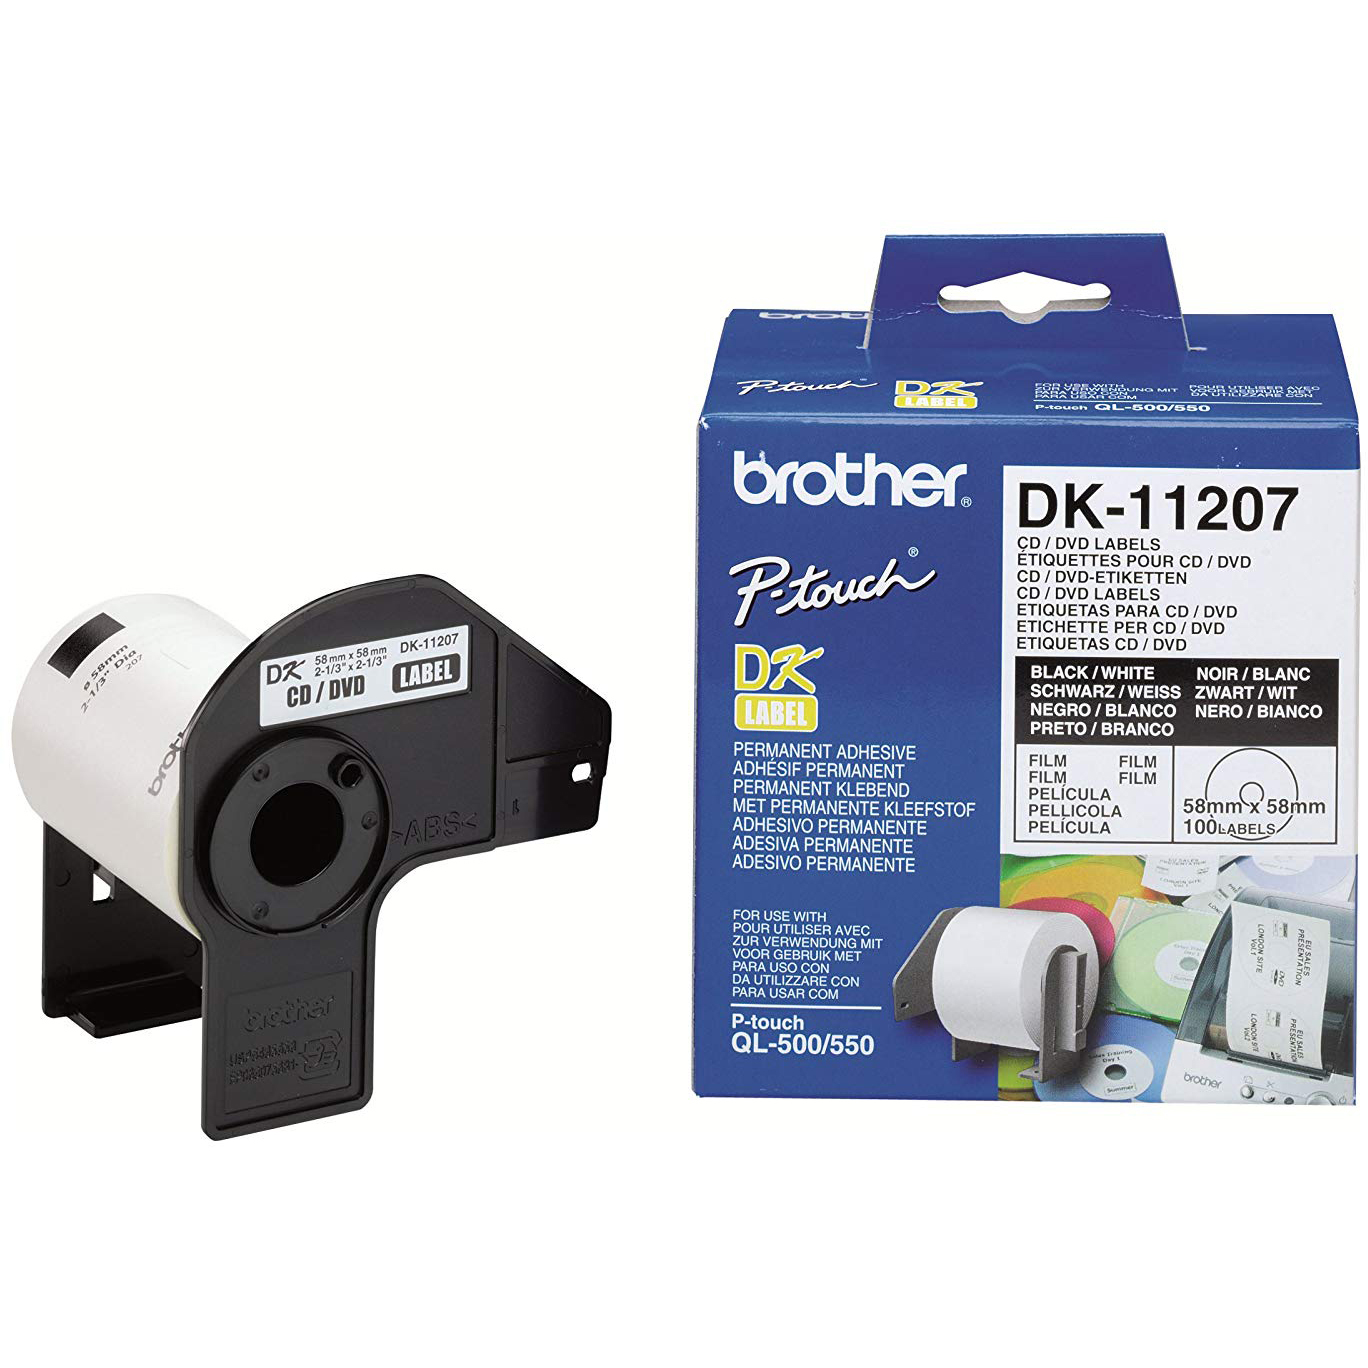 Original Brother DK-11207 CD/DVD Film Label Roll Black on White 58mm diameter Label Tape (DK11207)